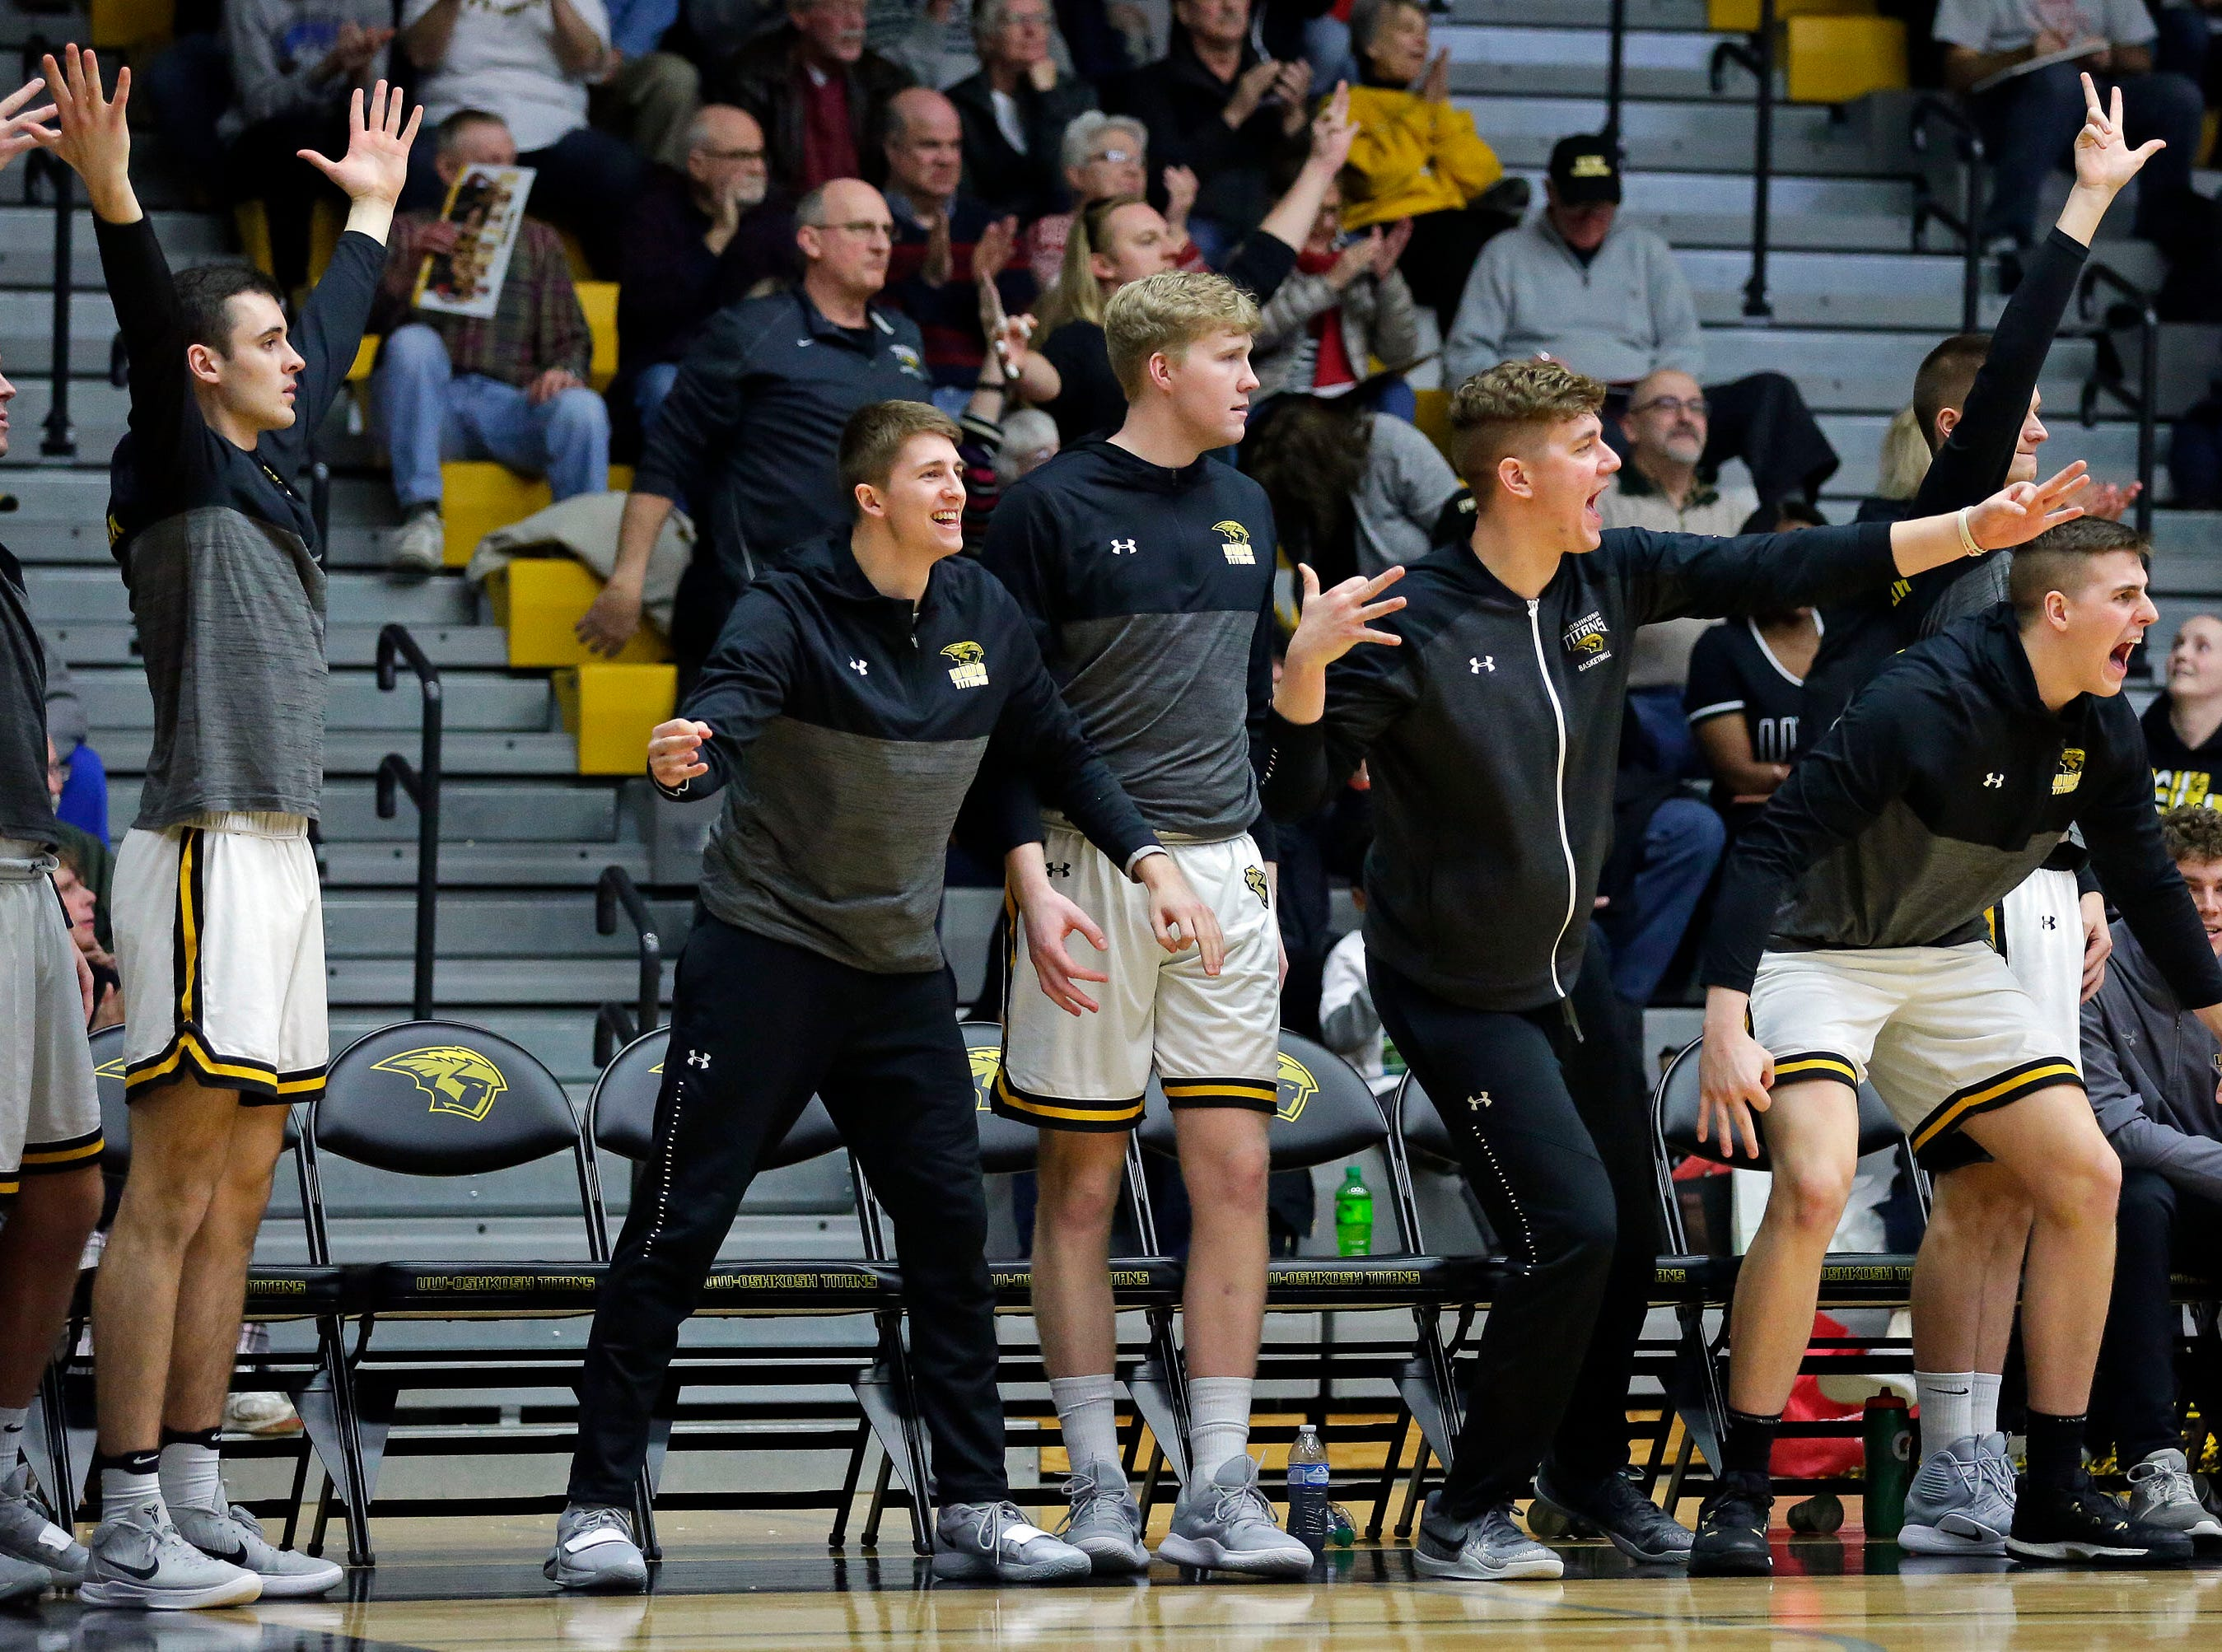 UW-Oshkosh celebrates a three as the Titans take on UW-La Crosse in Wisconsin Intercollegiate Athletic Conference basketball Saturday, January 19, 2019, at Kolf Sports Center in Oshkosh, Wis. 